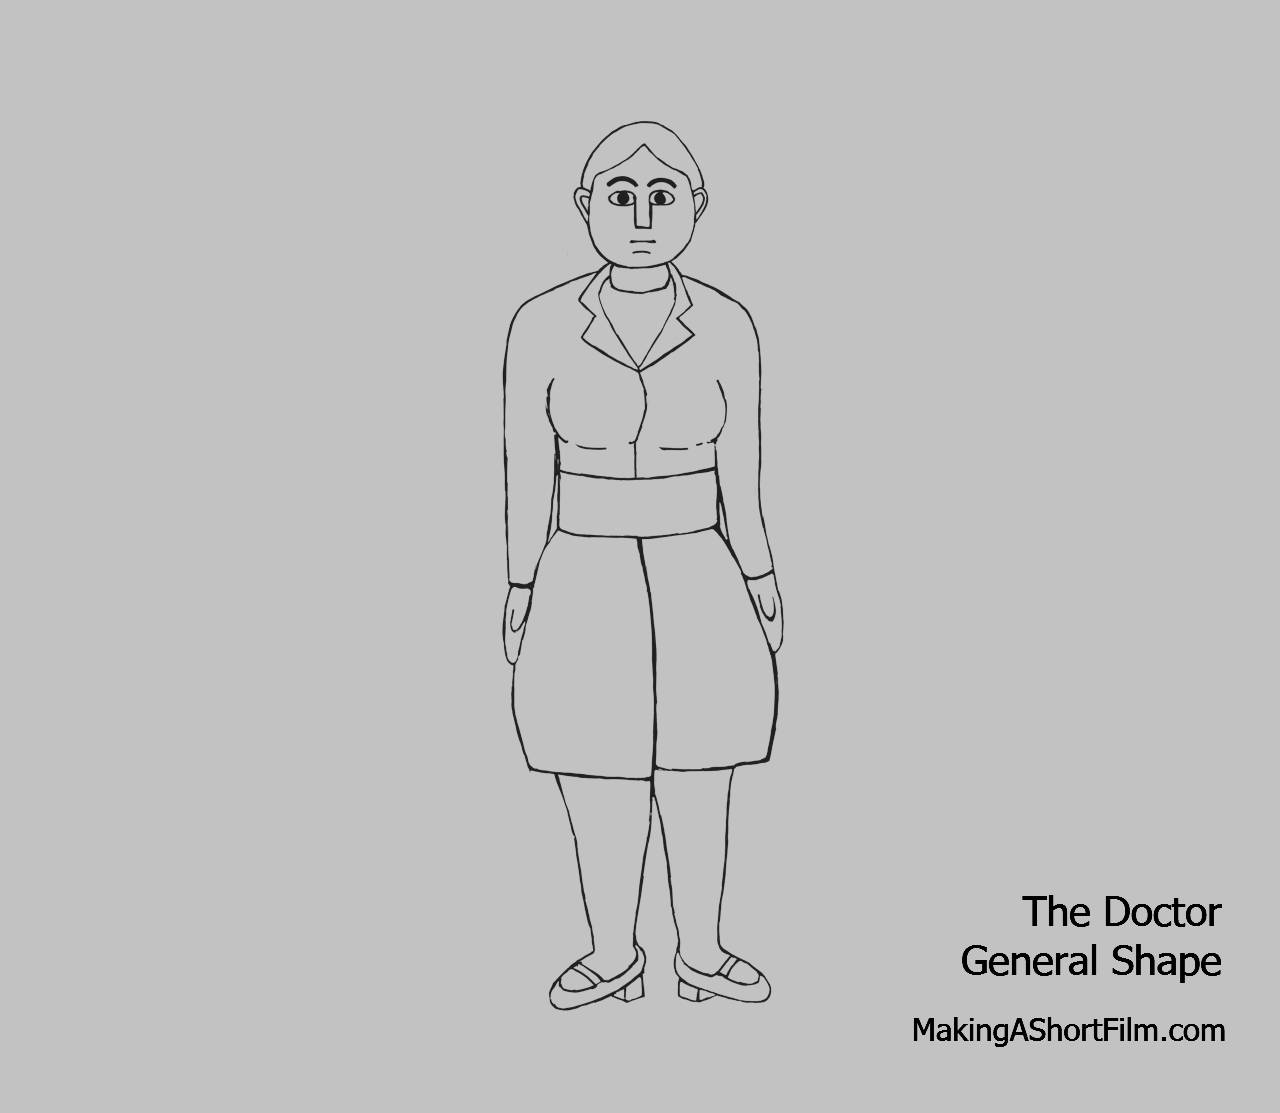 The general shape of the Doctor